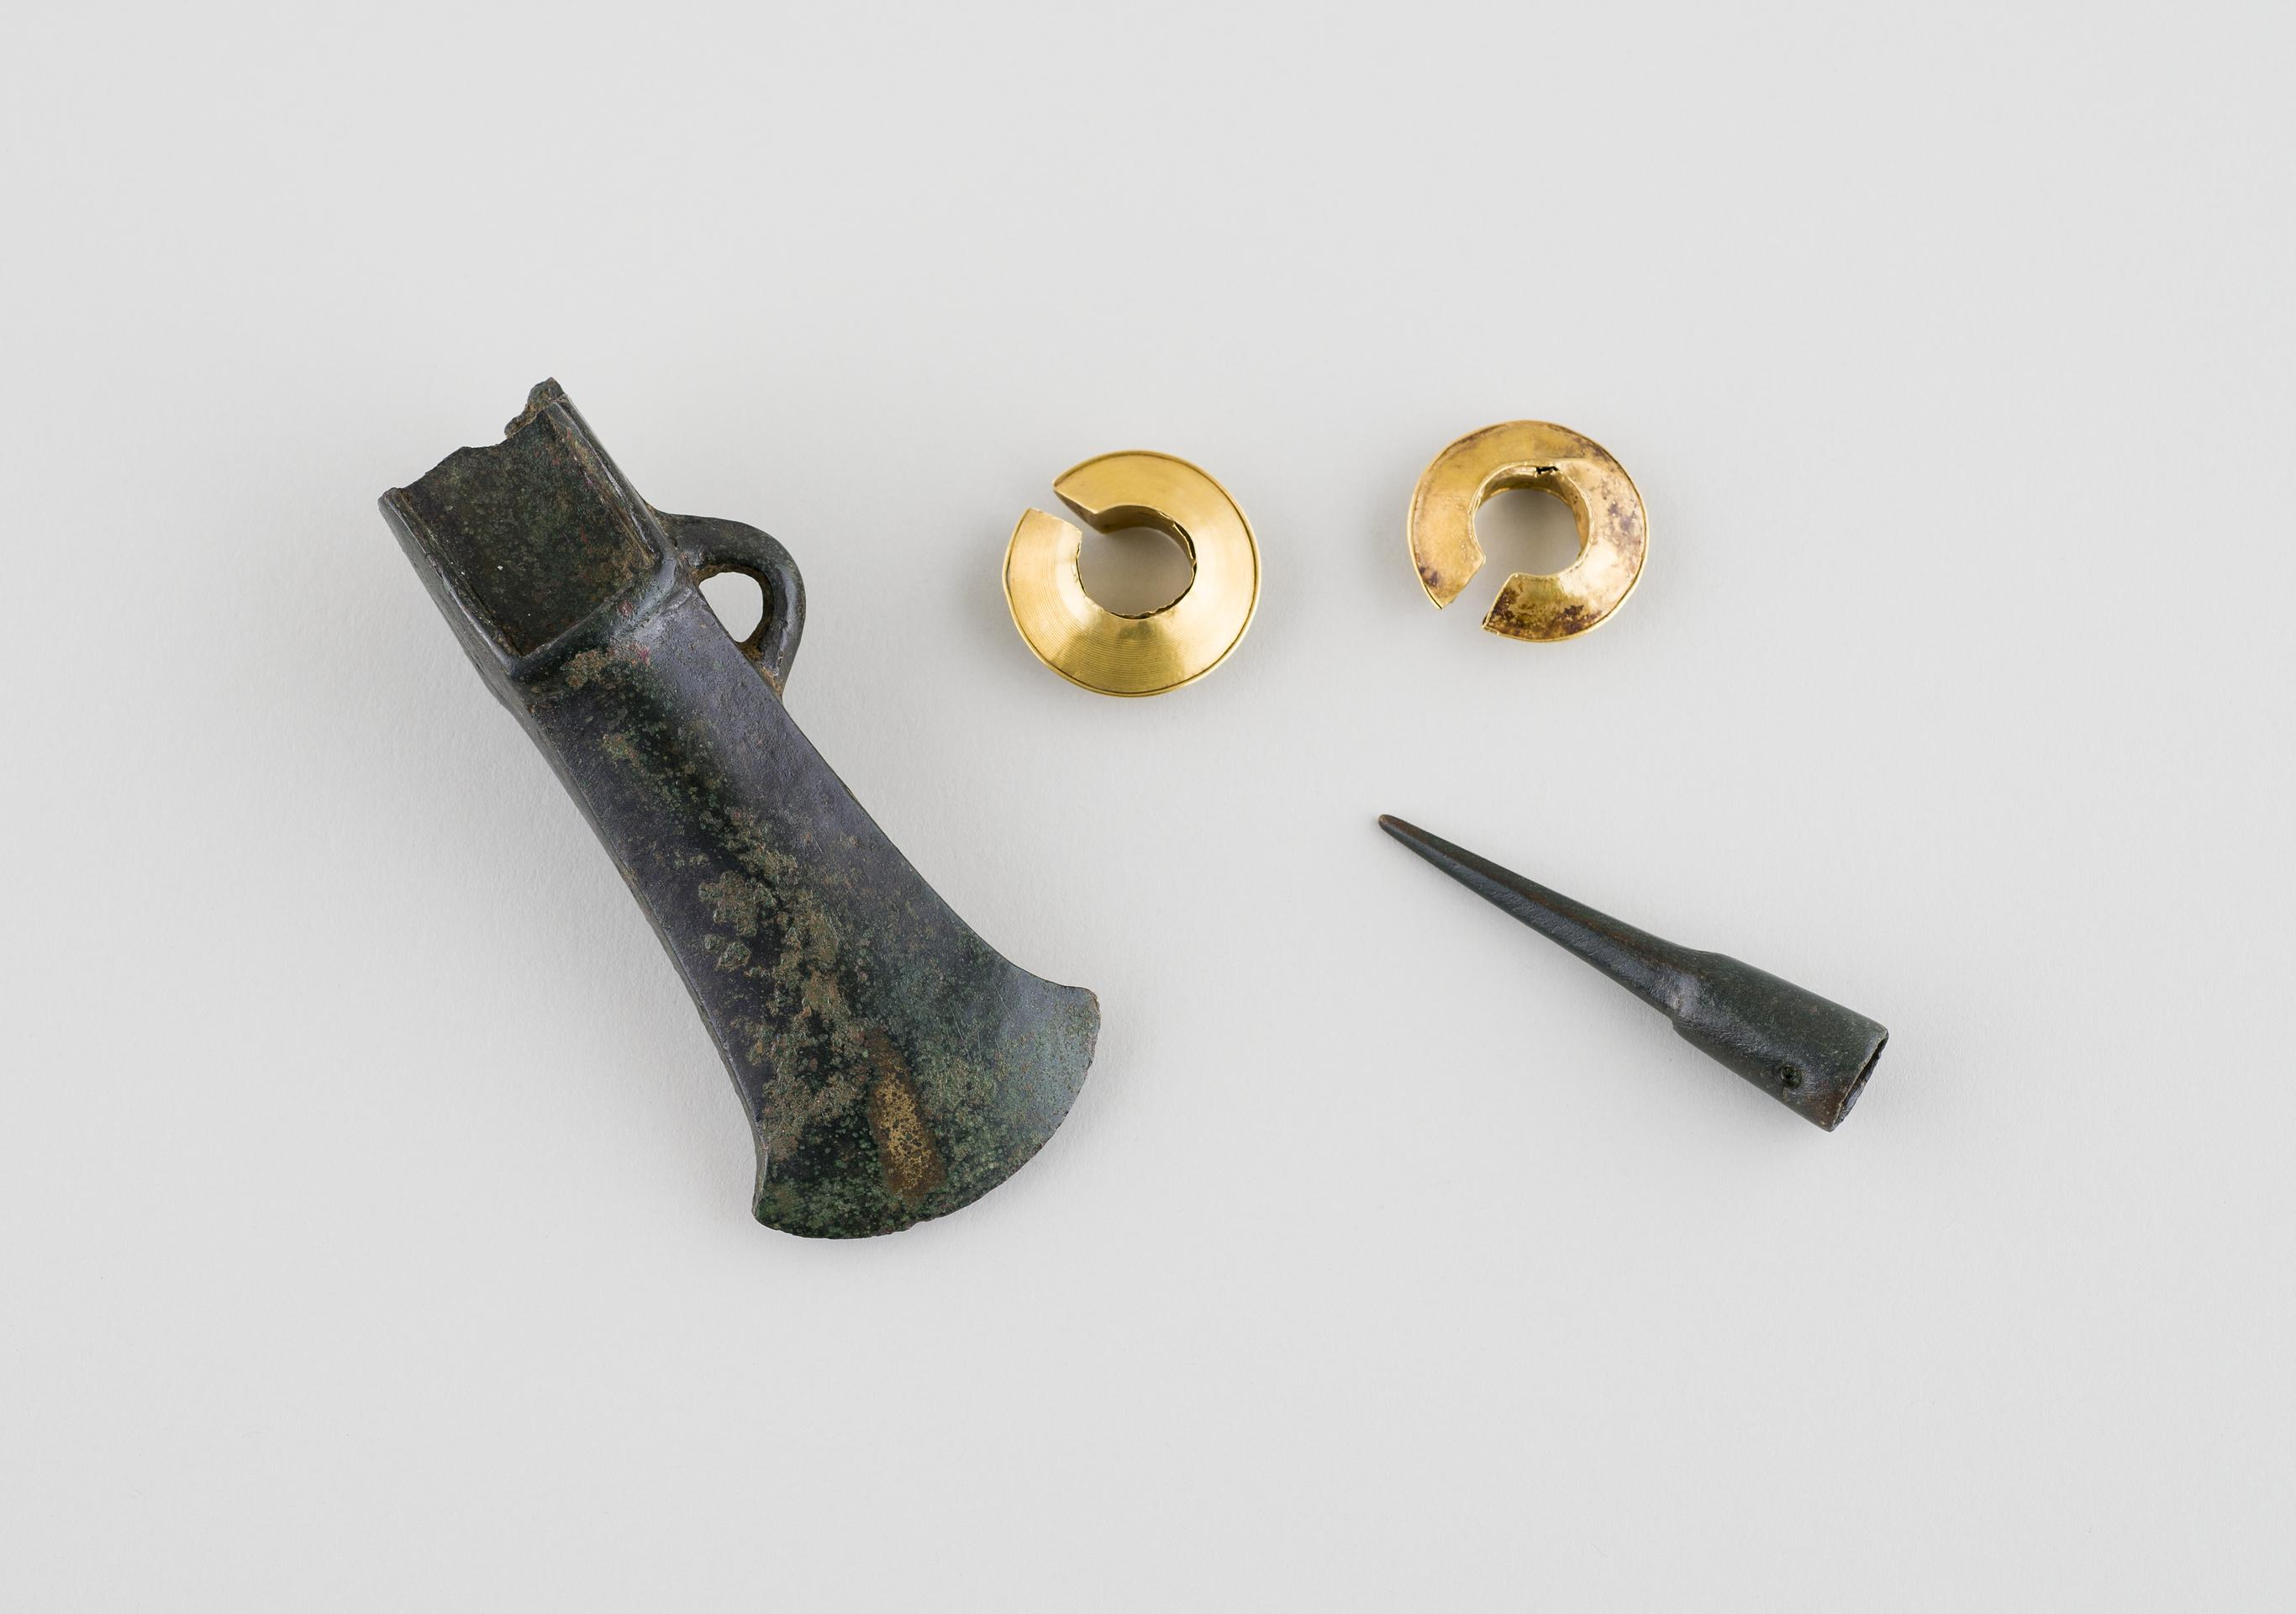 Open the image &lsquoTwo gold lock-rings, bronze palstave, bronze awl'